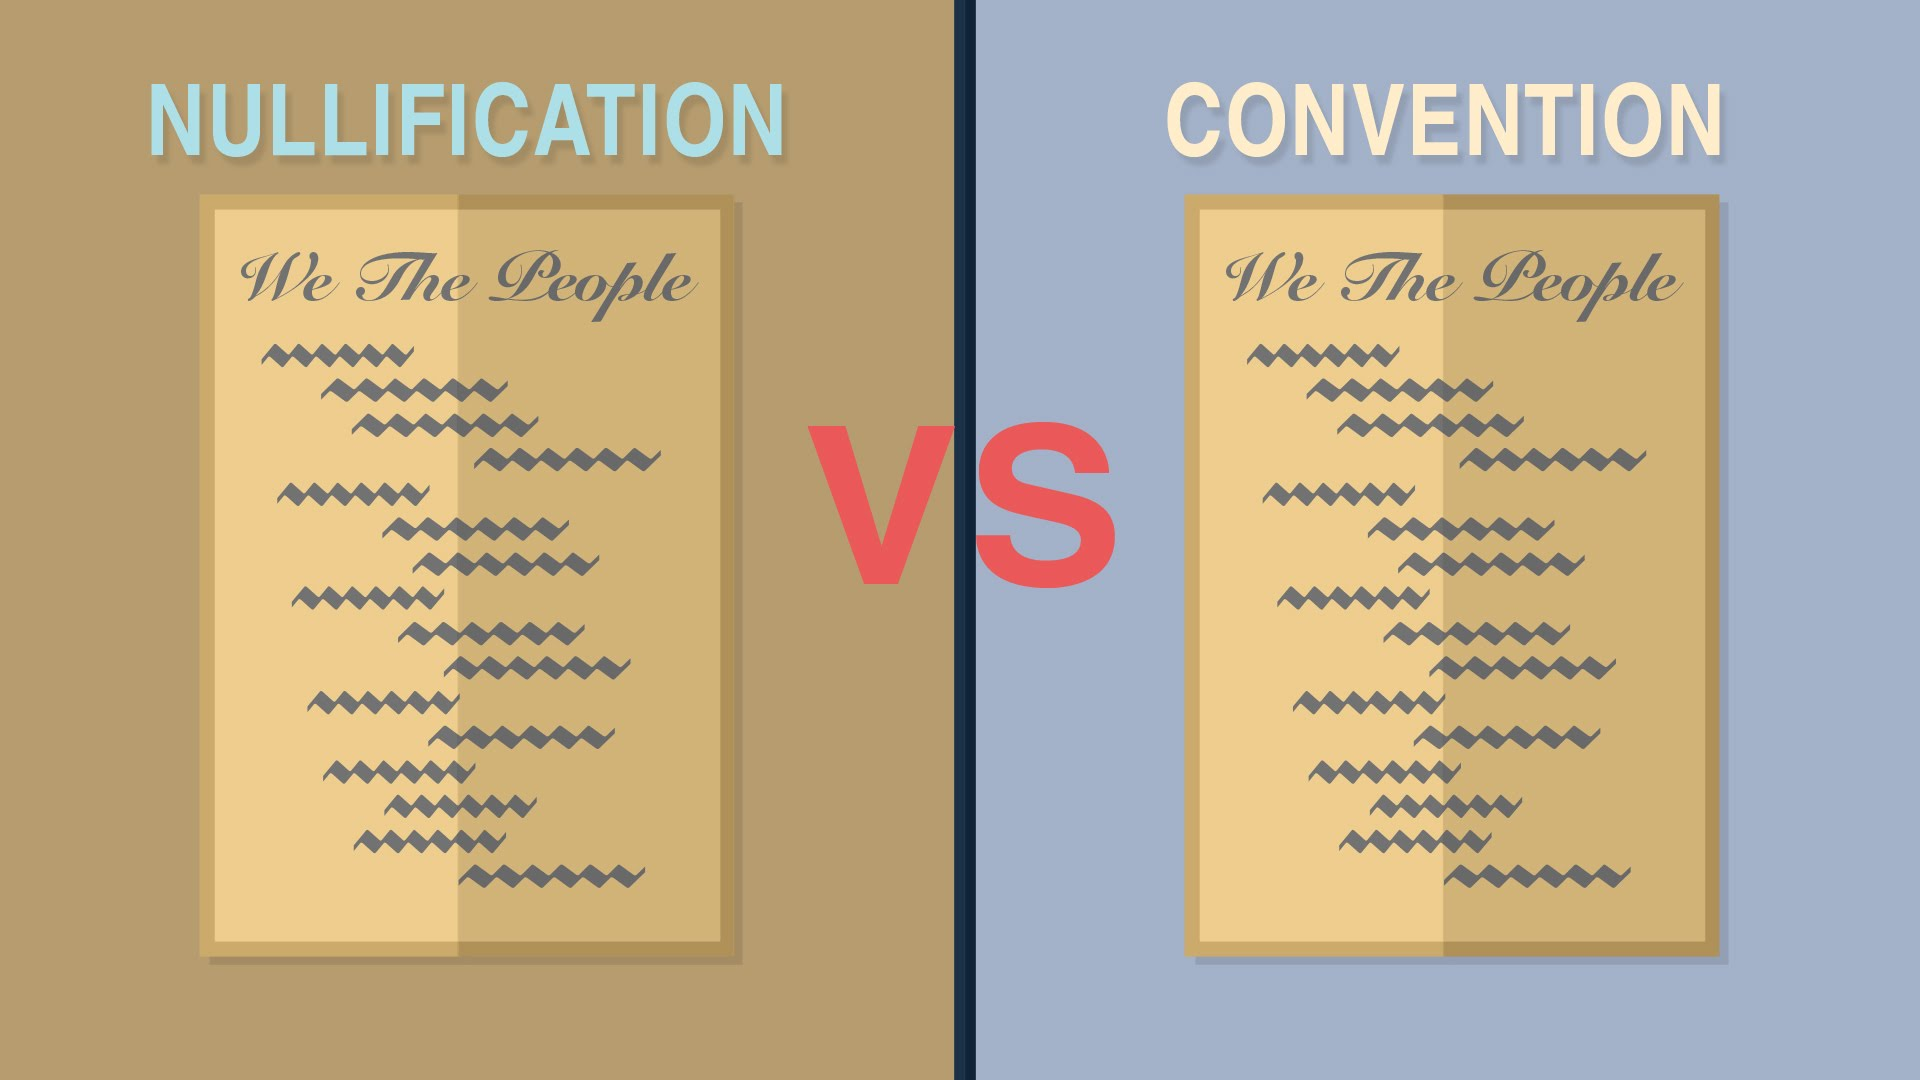 Letter Re: Nullification vs. Article 5 Convention